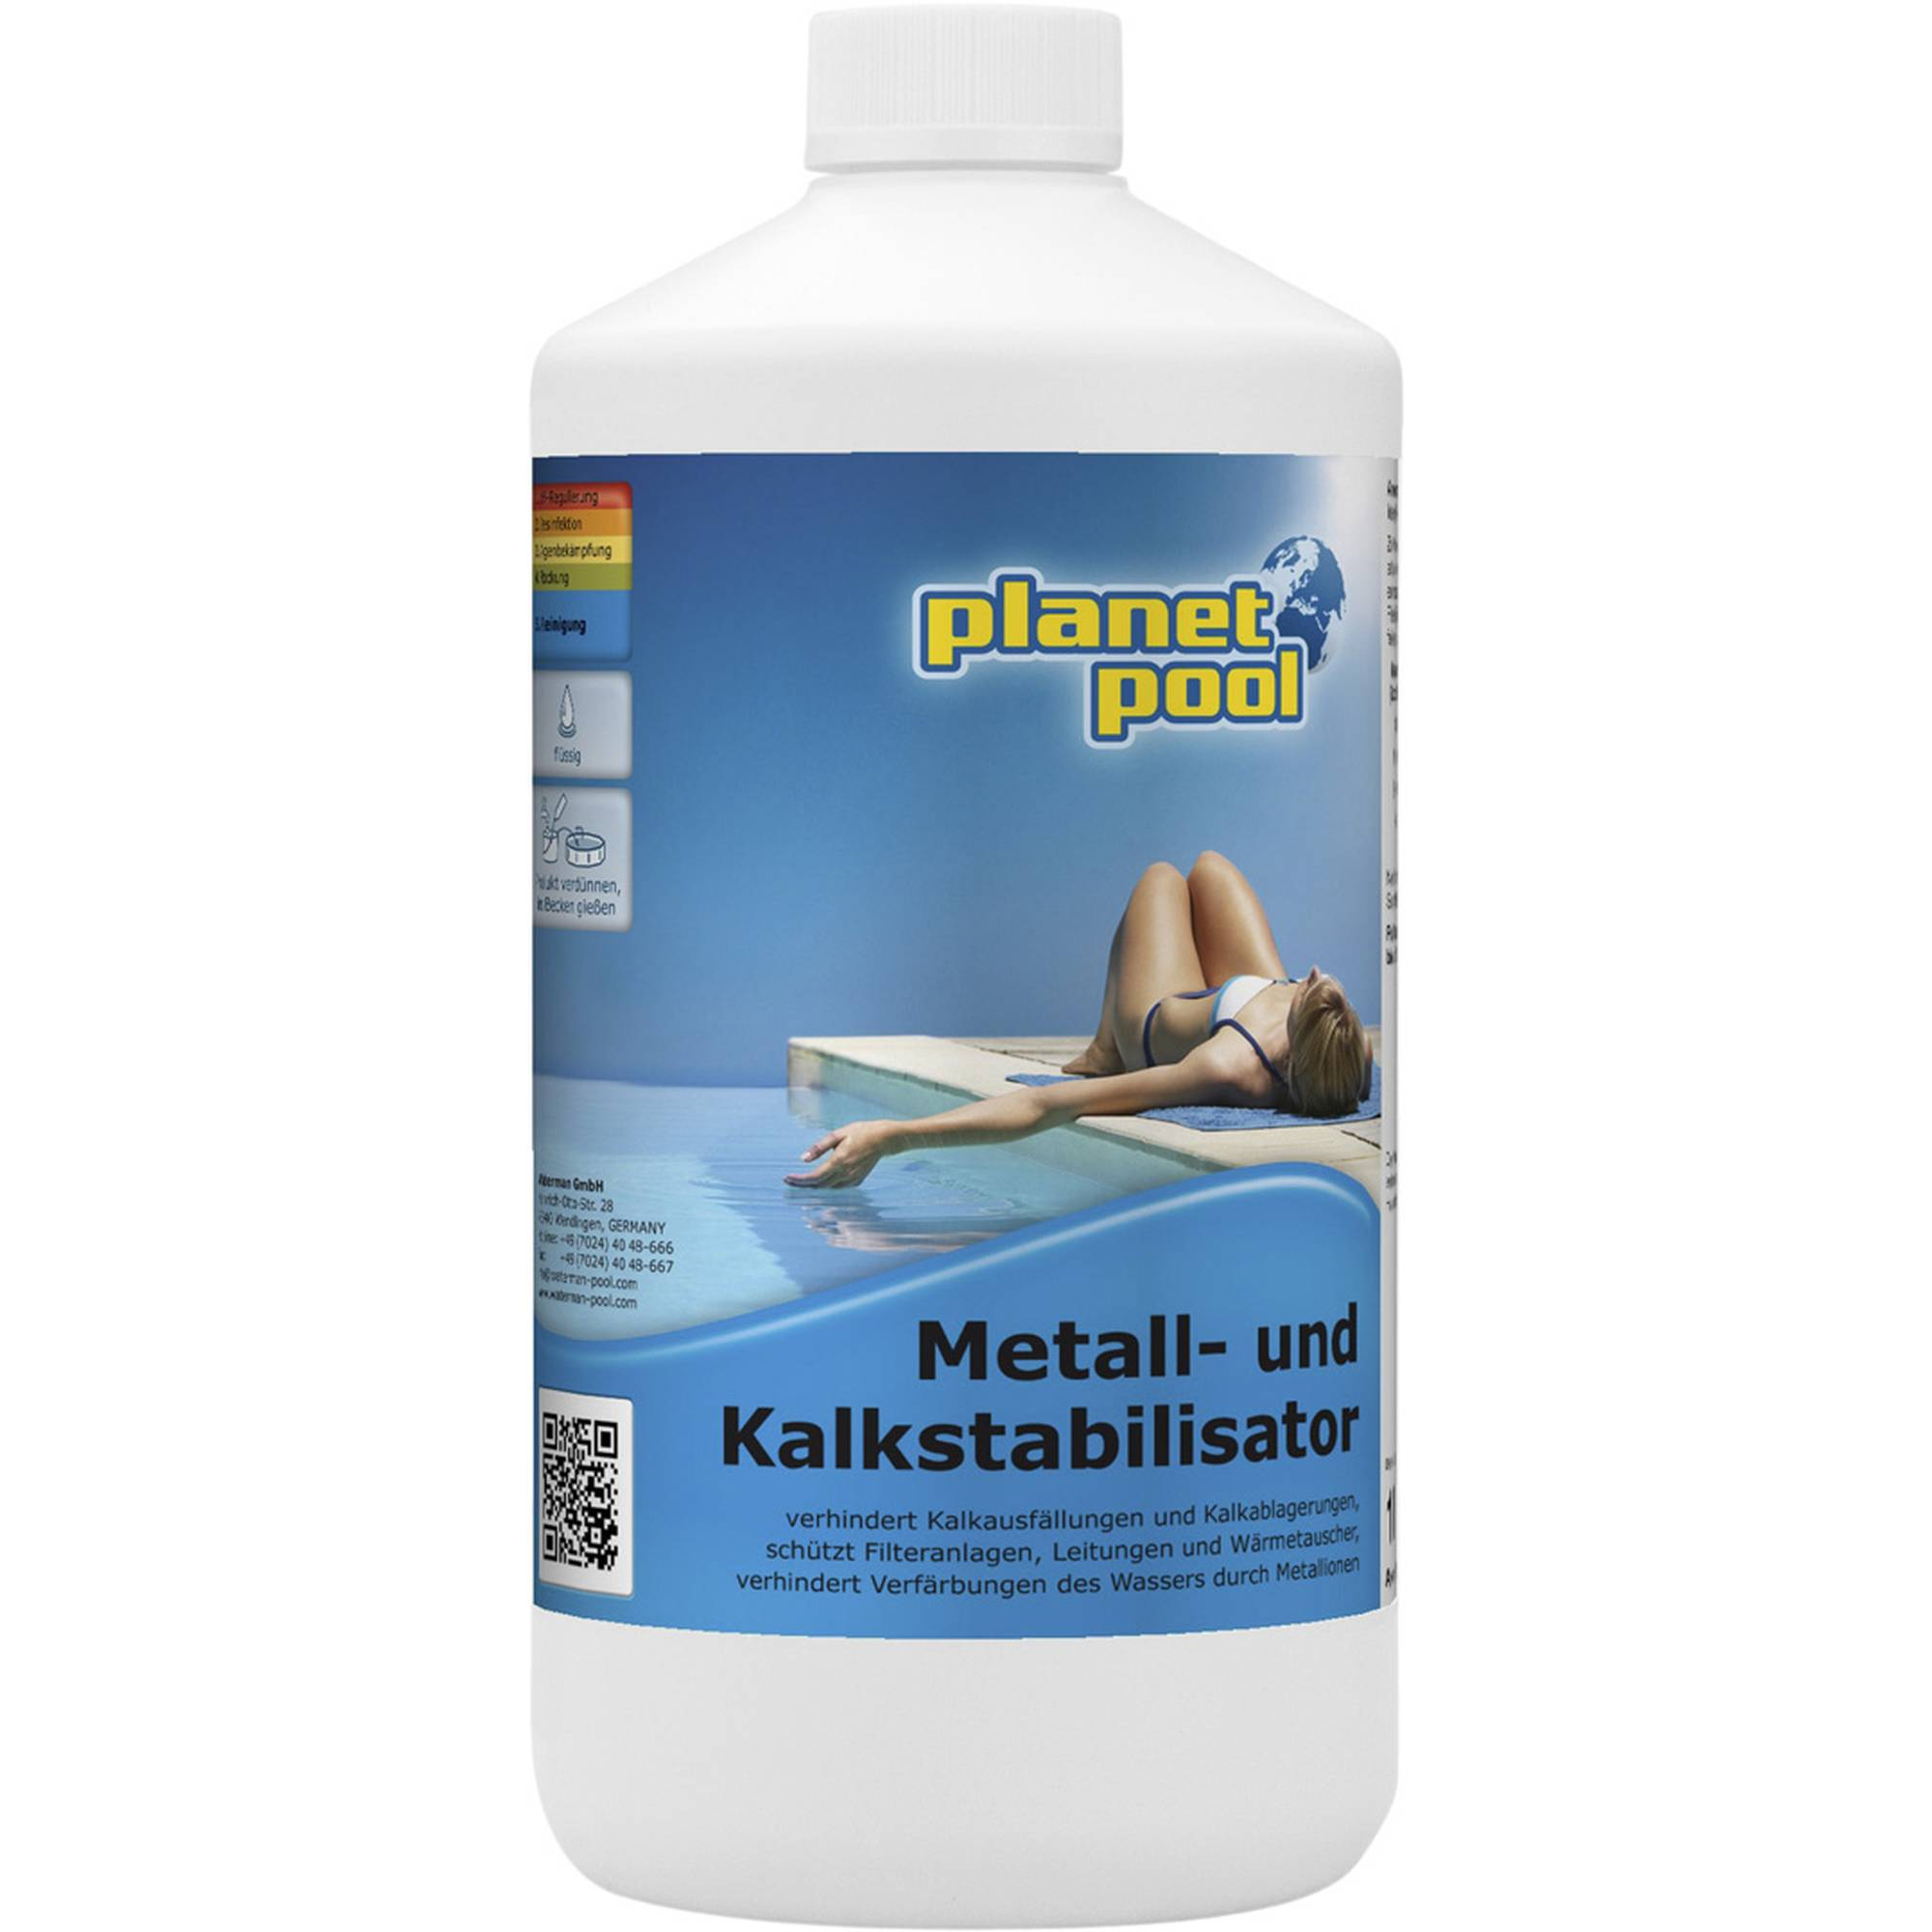 PLANET POOL Metall- und Kalkstabilisator 1 Liter